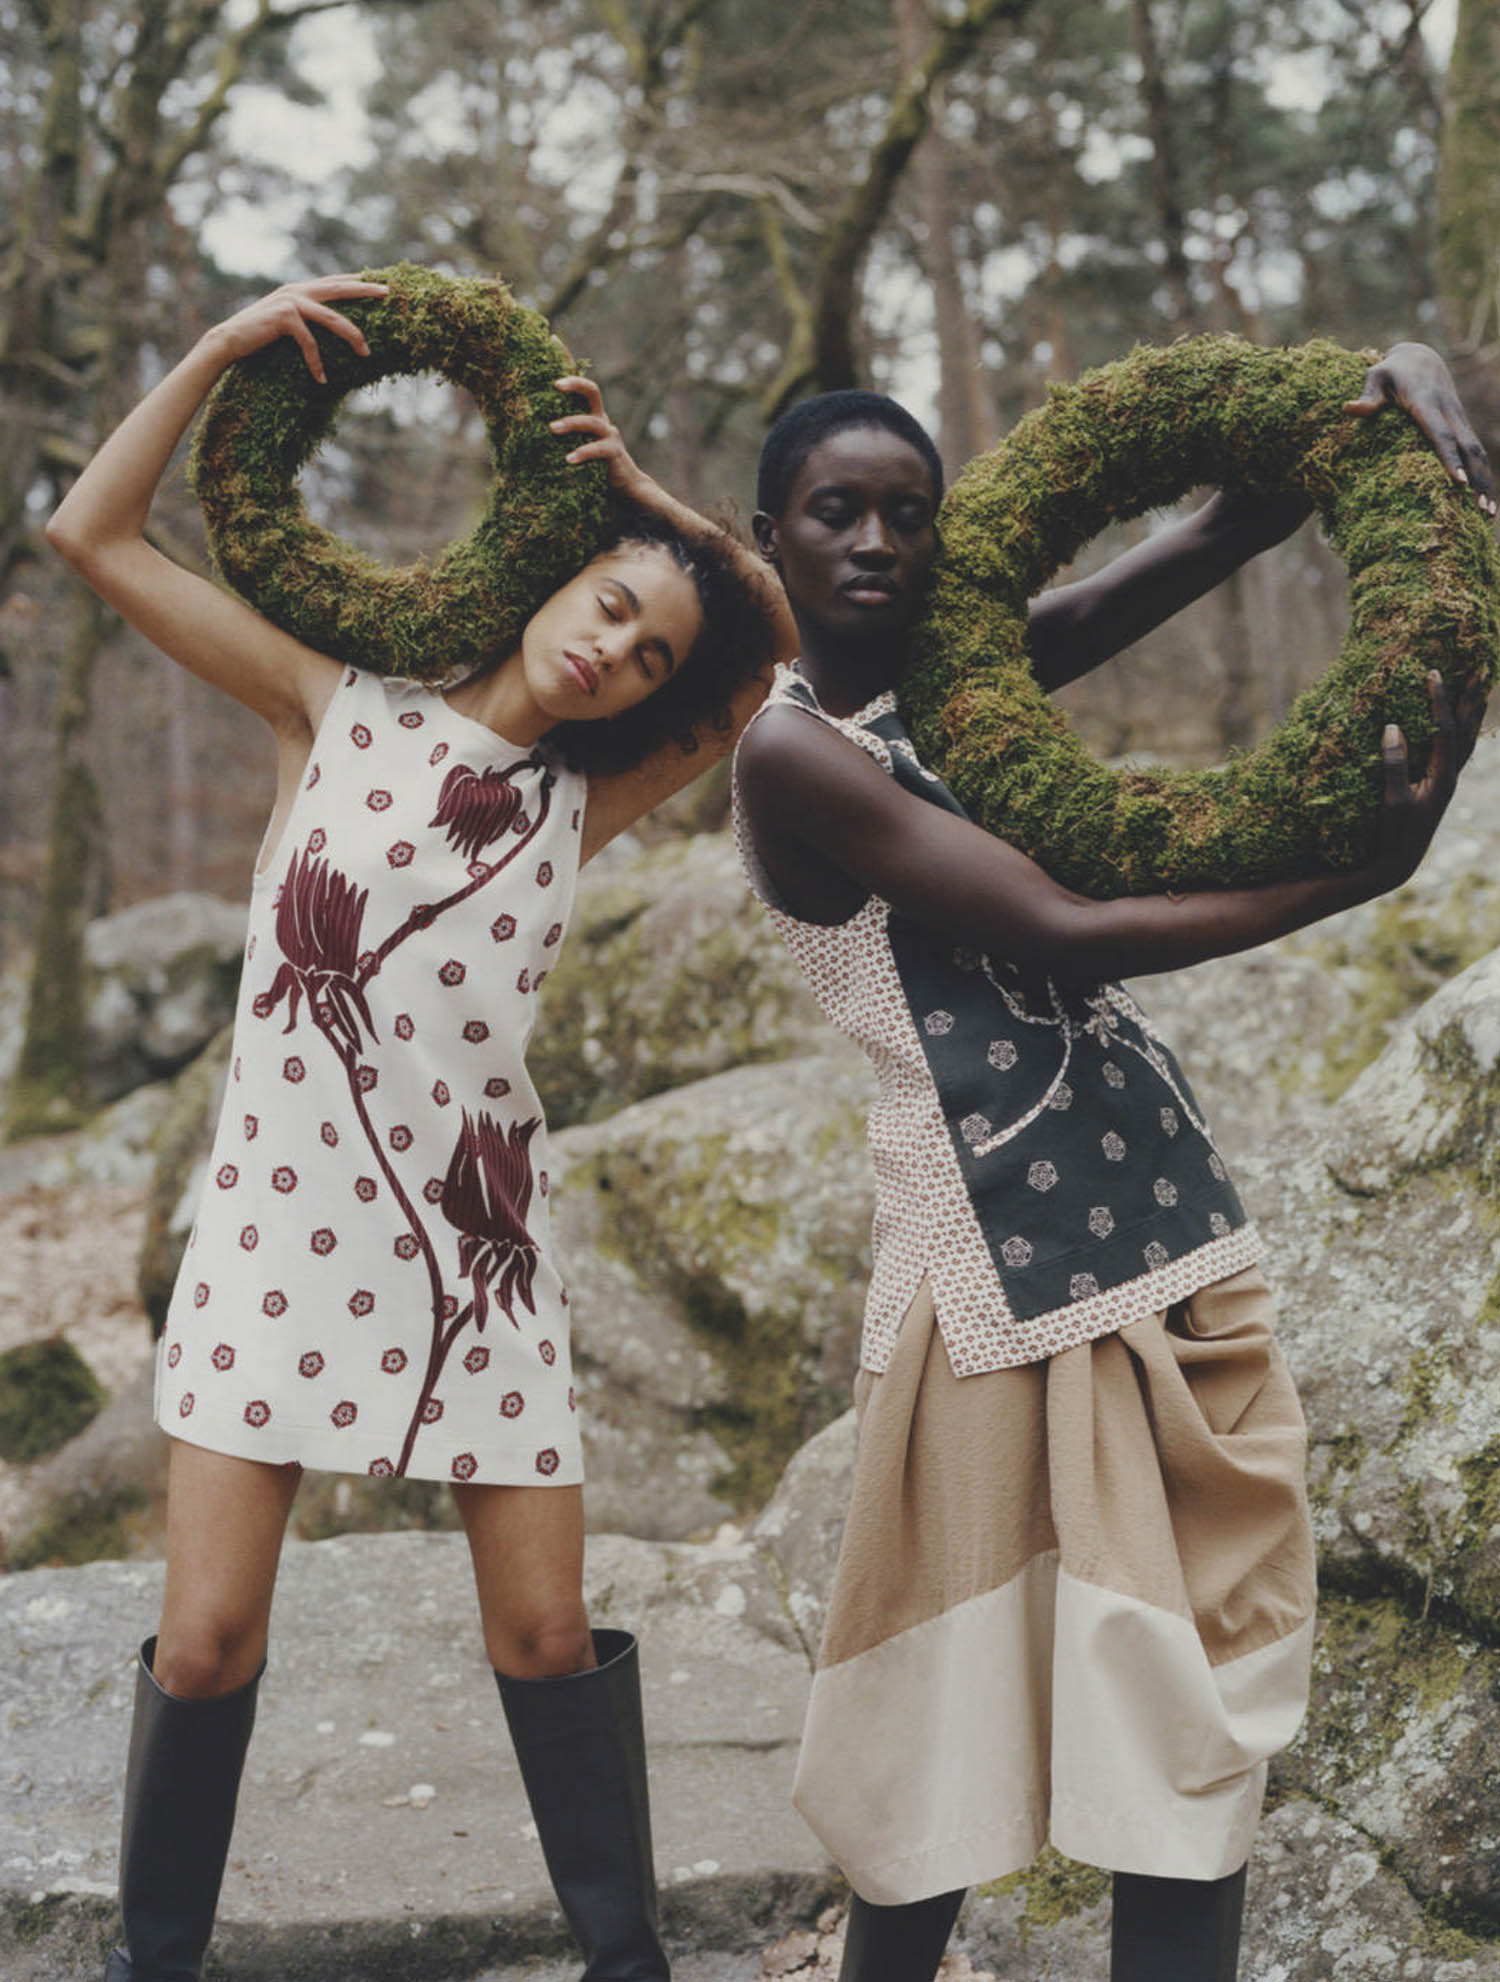 Sokhna Niane and Aouatif Saadi by Alex Huanfa Cheng for Vogue Russia May 2021